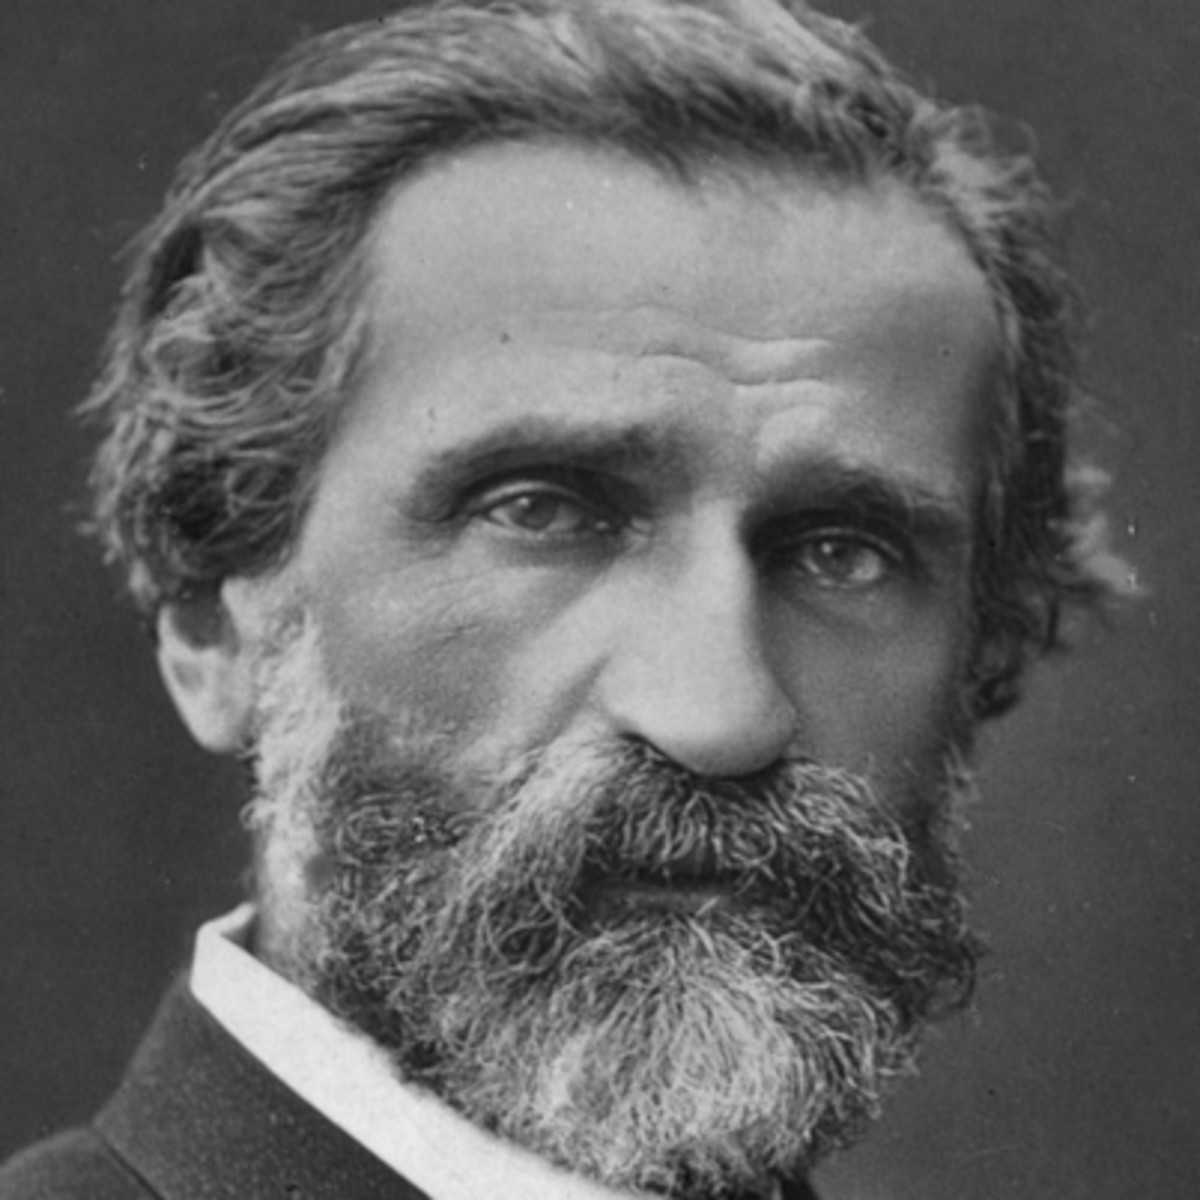 a biography of giuseppe verdi an italian operatic composer Giuseppe verdi was the most prominent and legendary italian romantic opera composer he is regarded as one of the most influential composers of the 19th century.